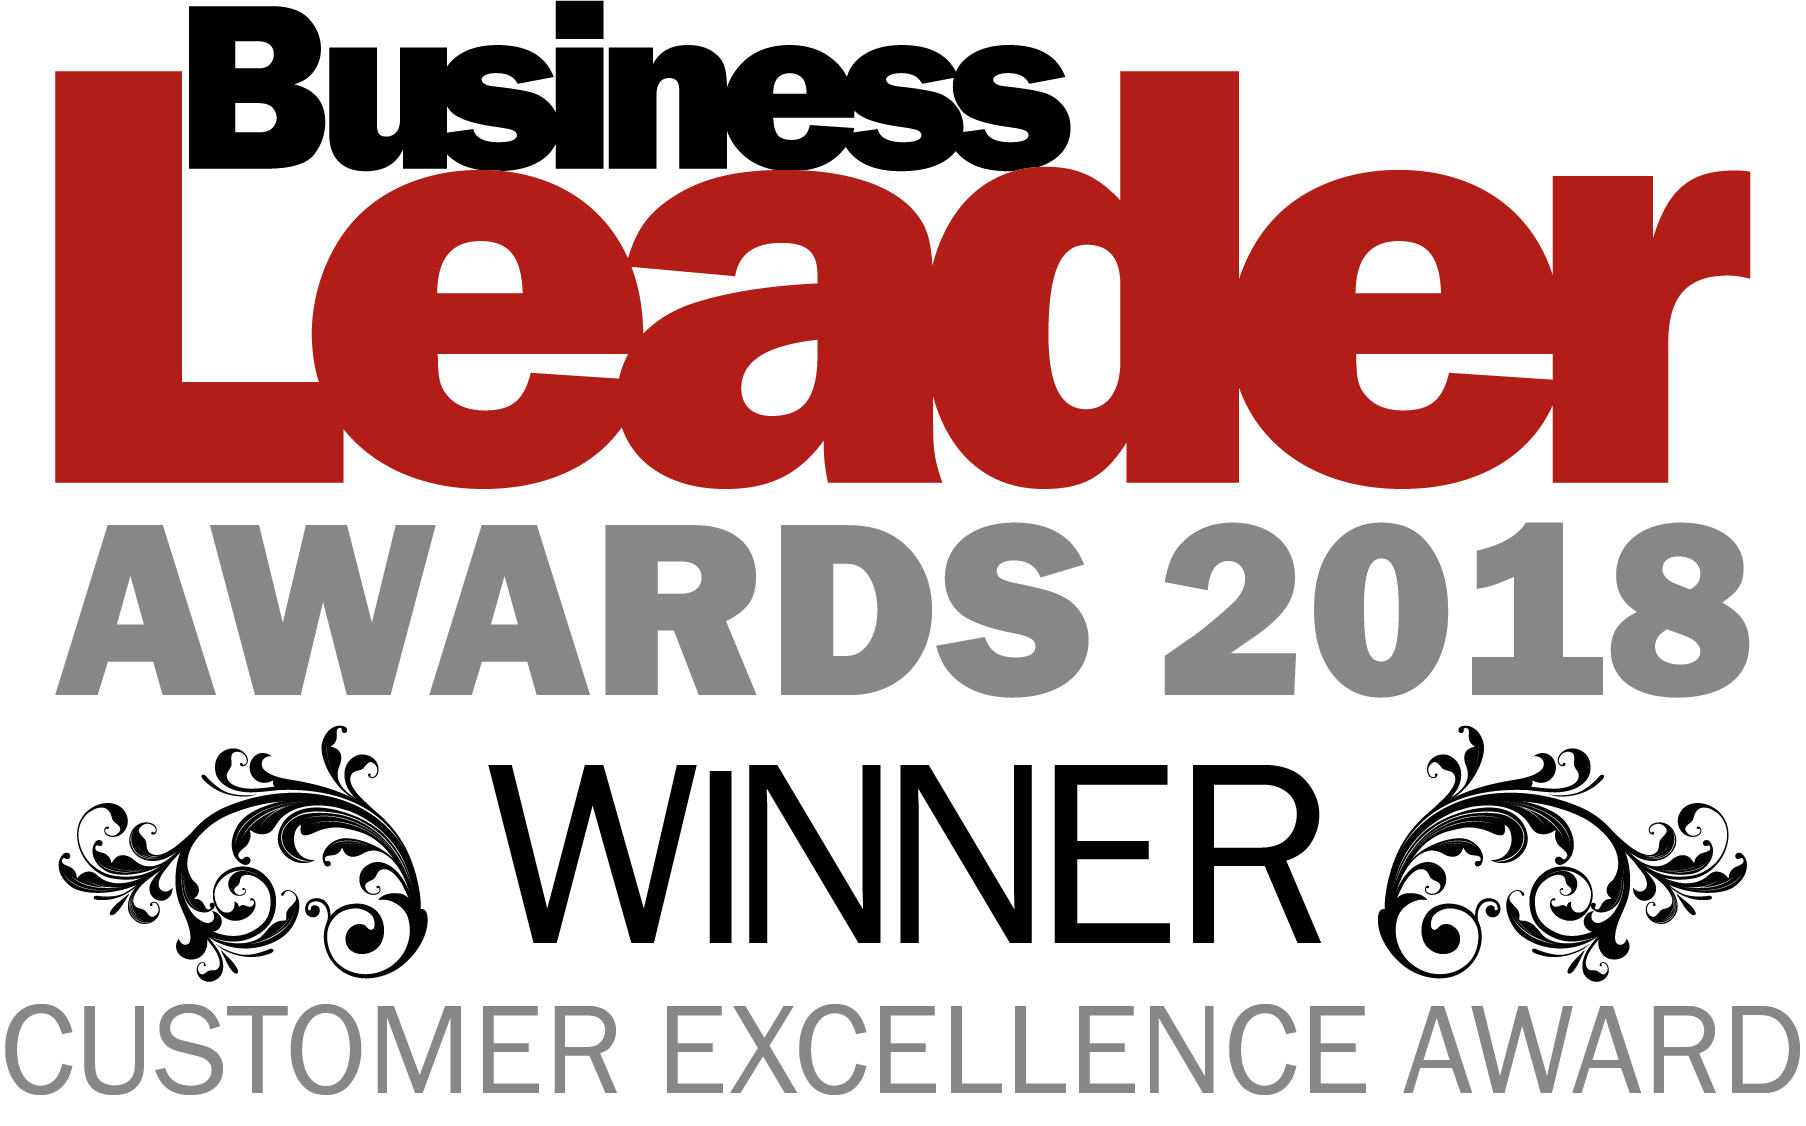 Business Leader Awards Winner 2018